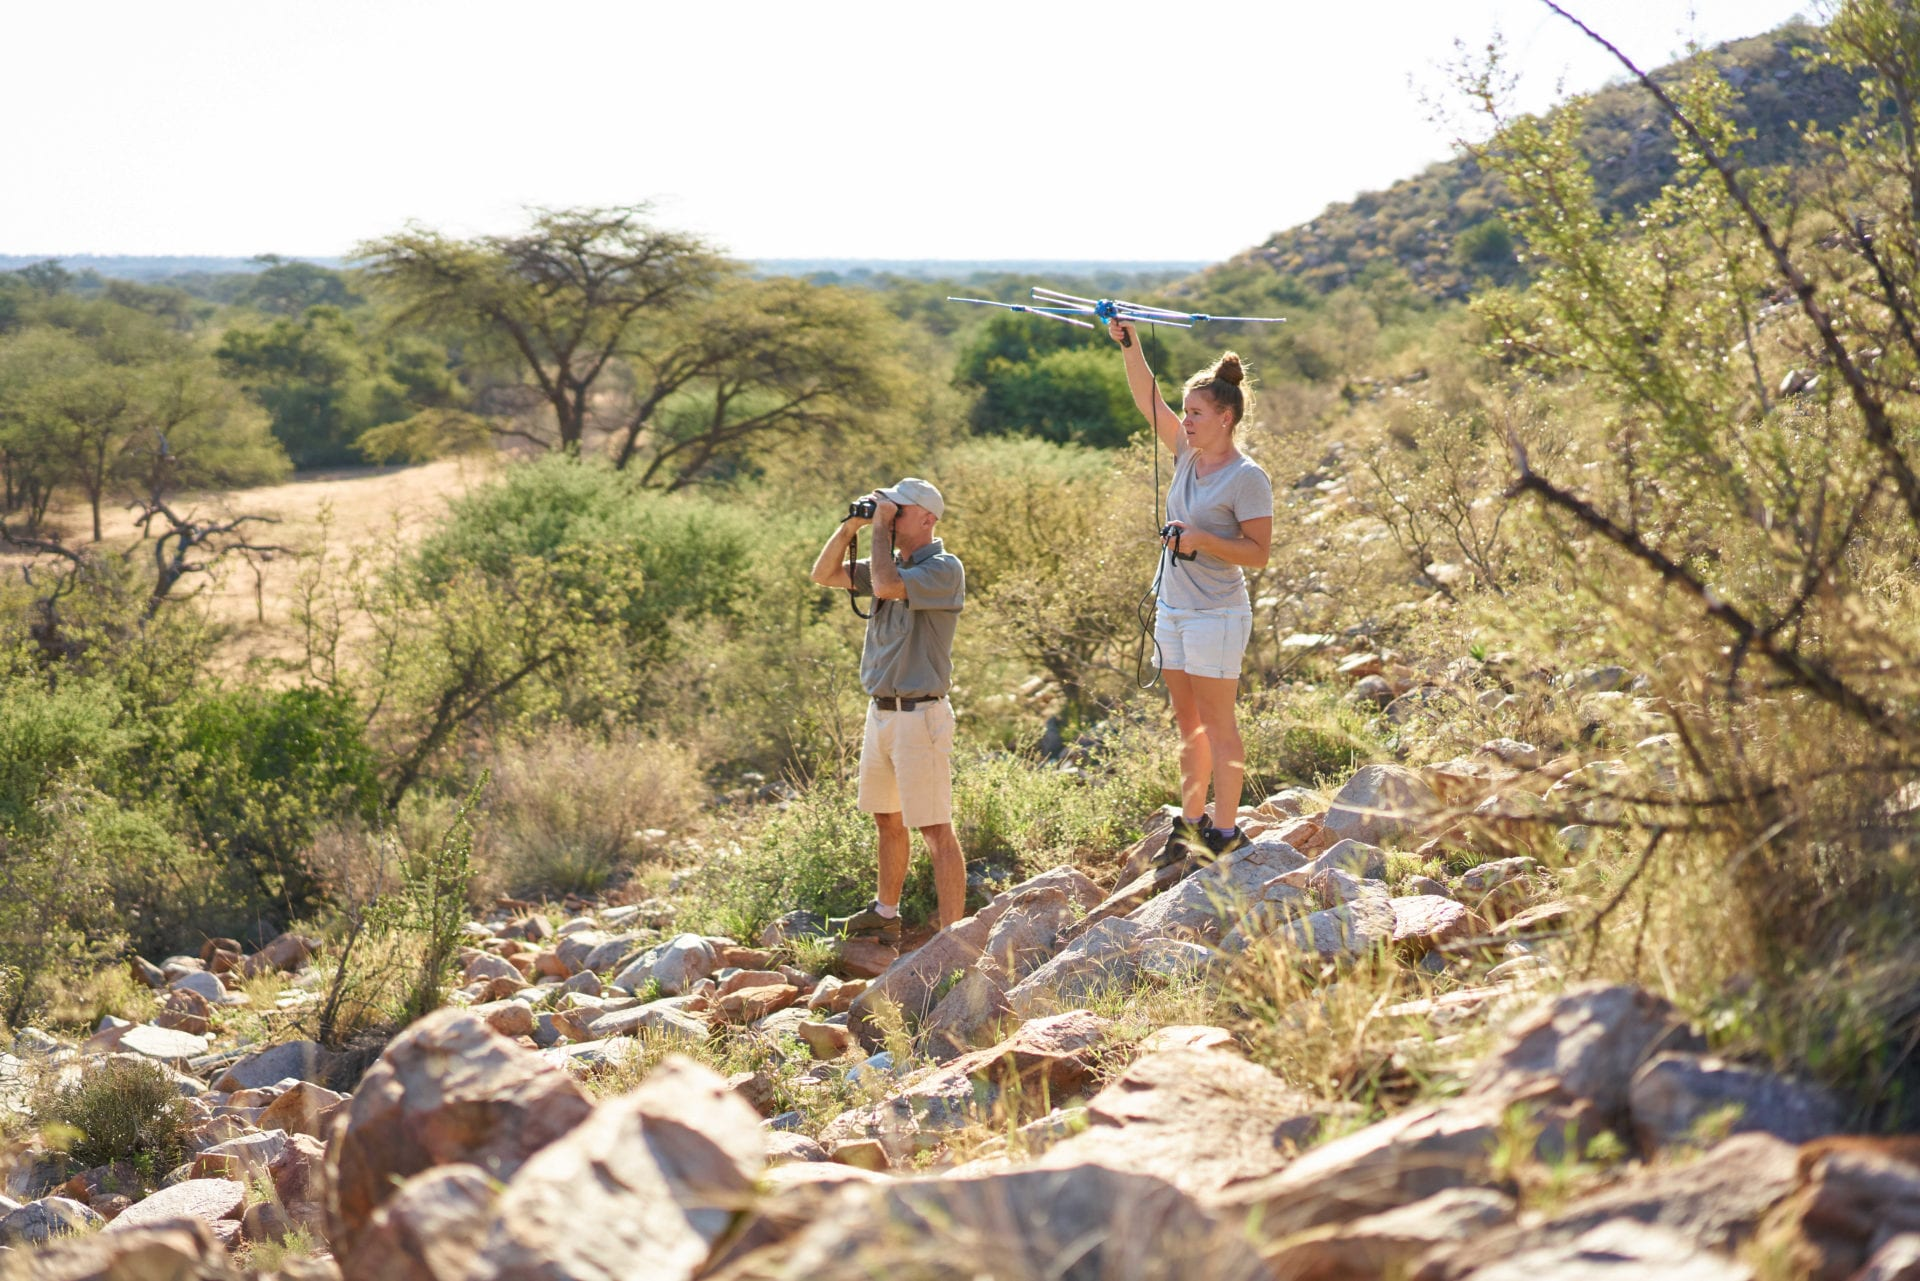 private wildlife research, Kalahari Conservation